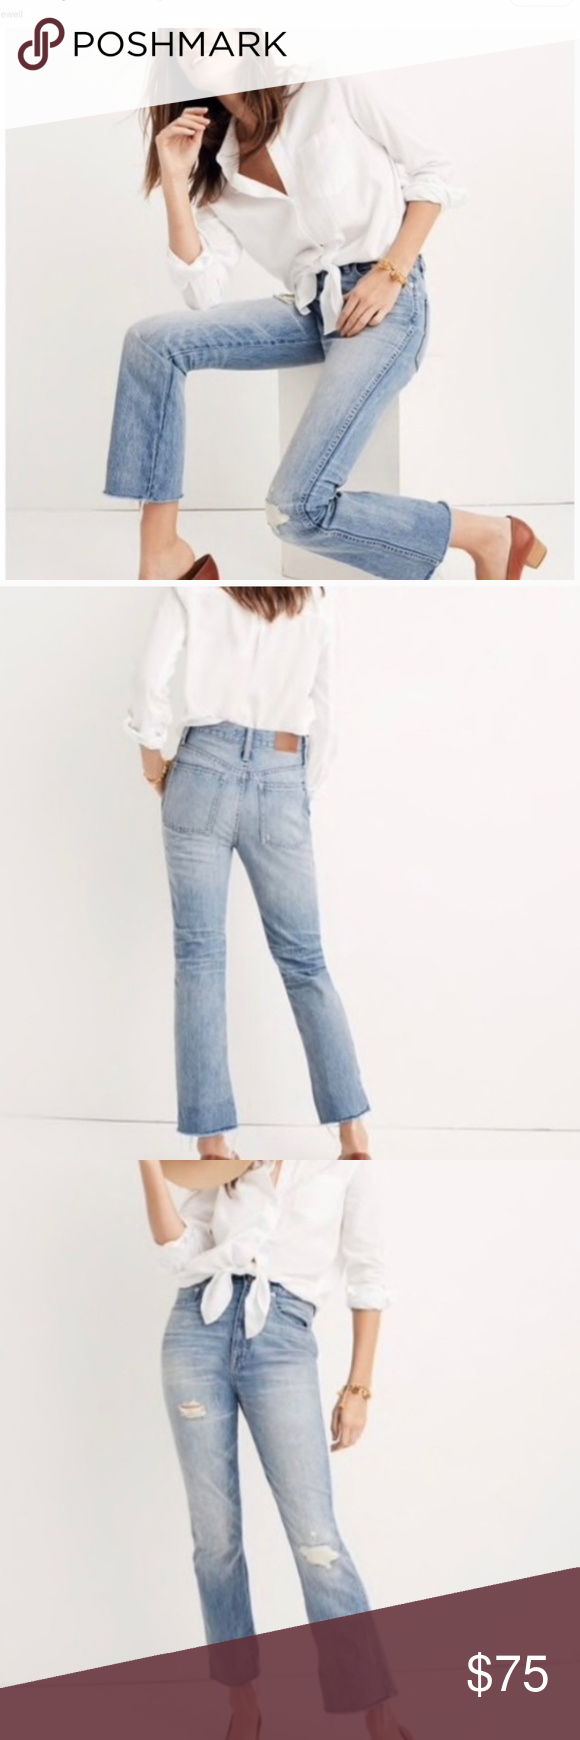 NWT MADEWELL Jeans Rigid demi boot crop jeans by madewell